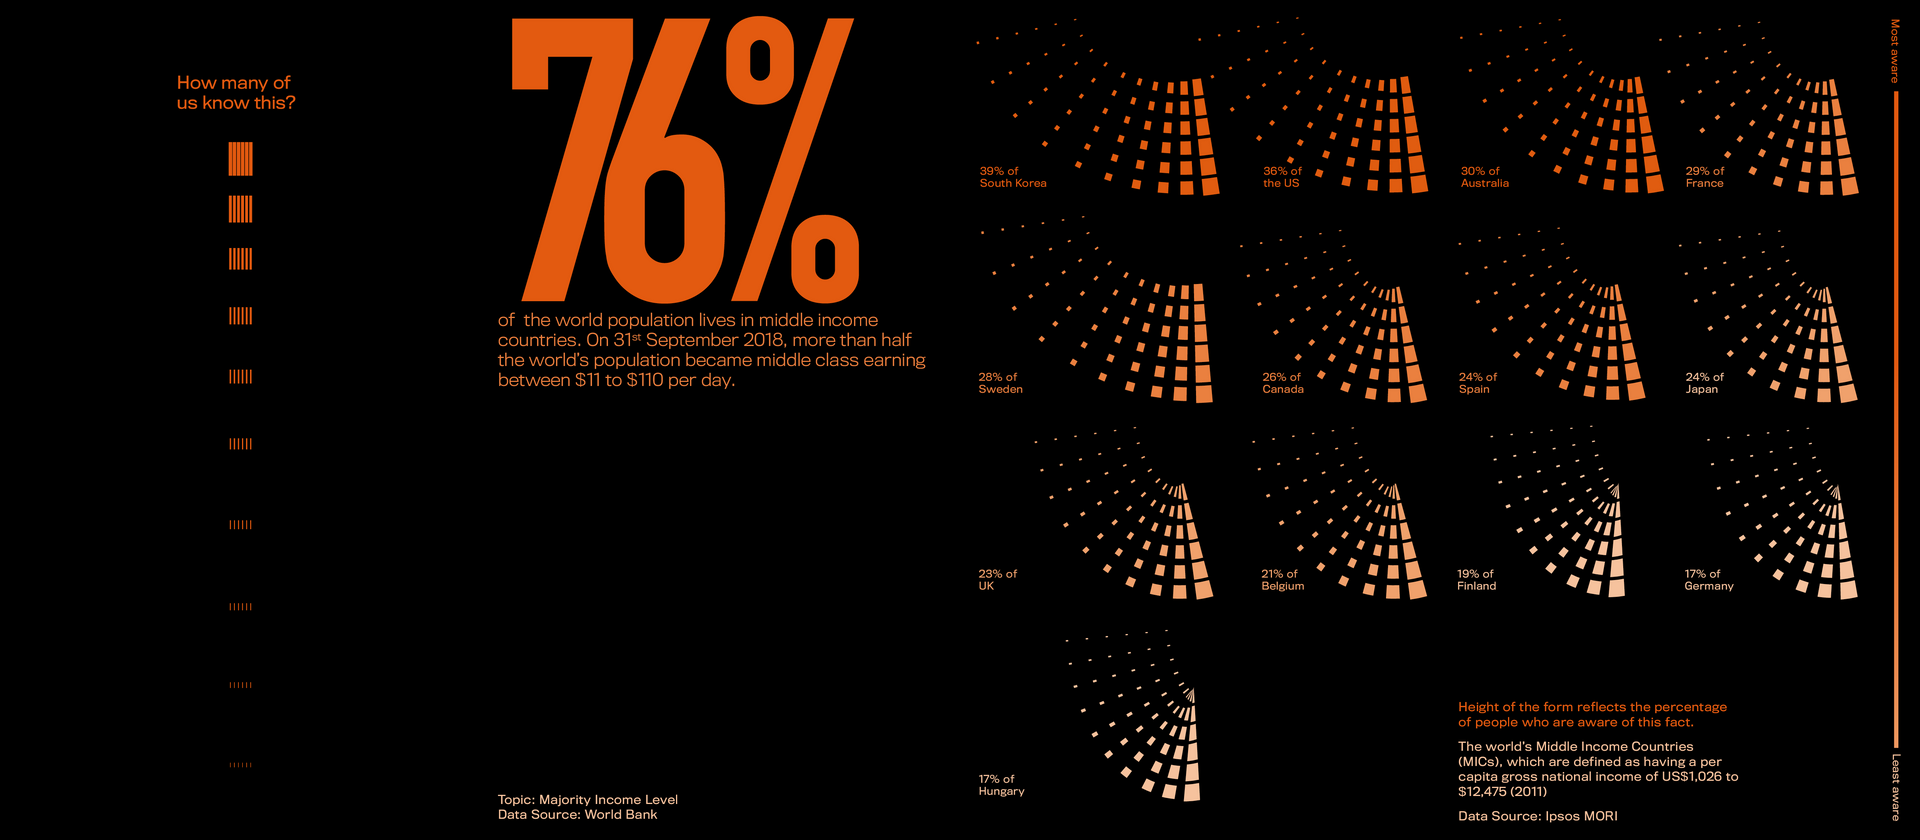 Fact: 76% of the world population lives in middle income countries.